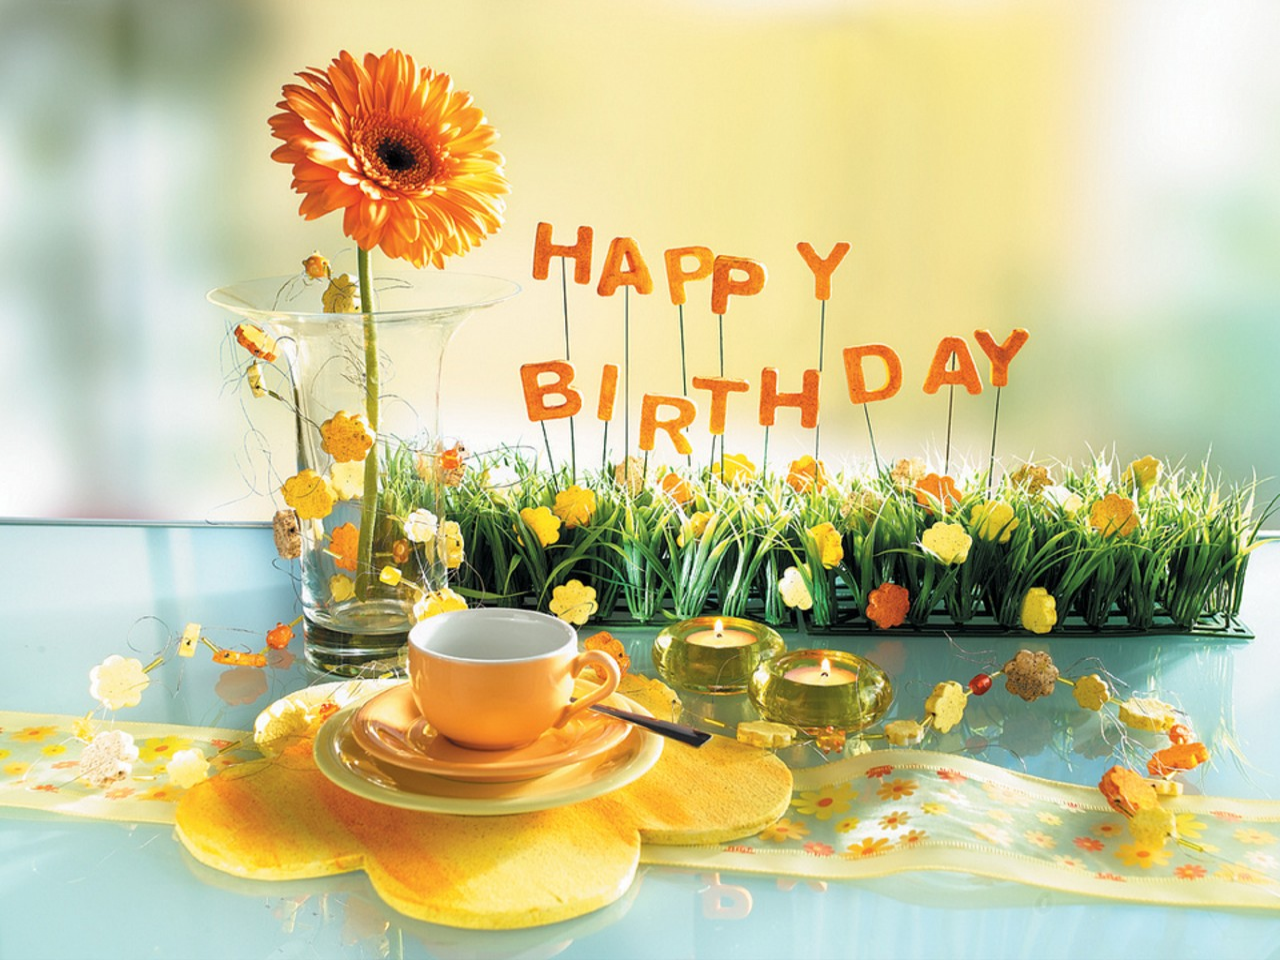 Hy Birthday Flowers 2 Wallpaper Free Tumblr And Pinterest Pictures